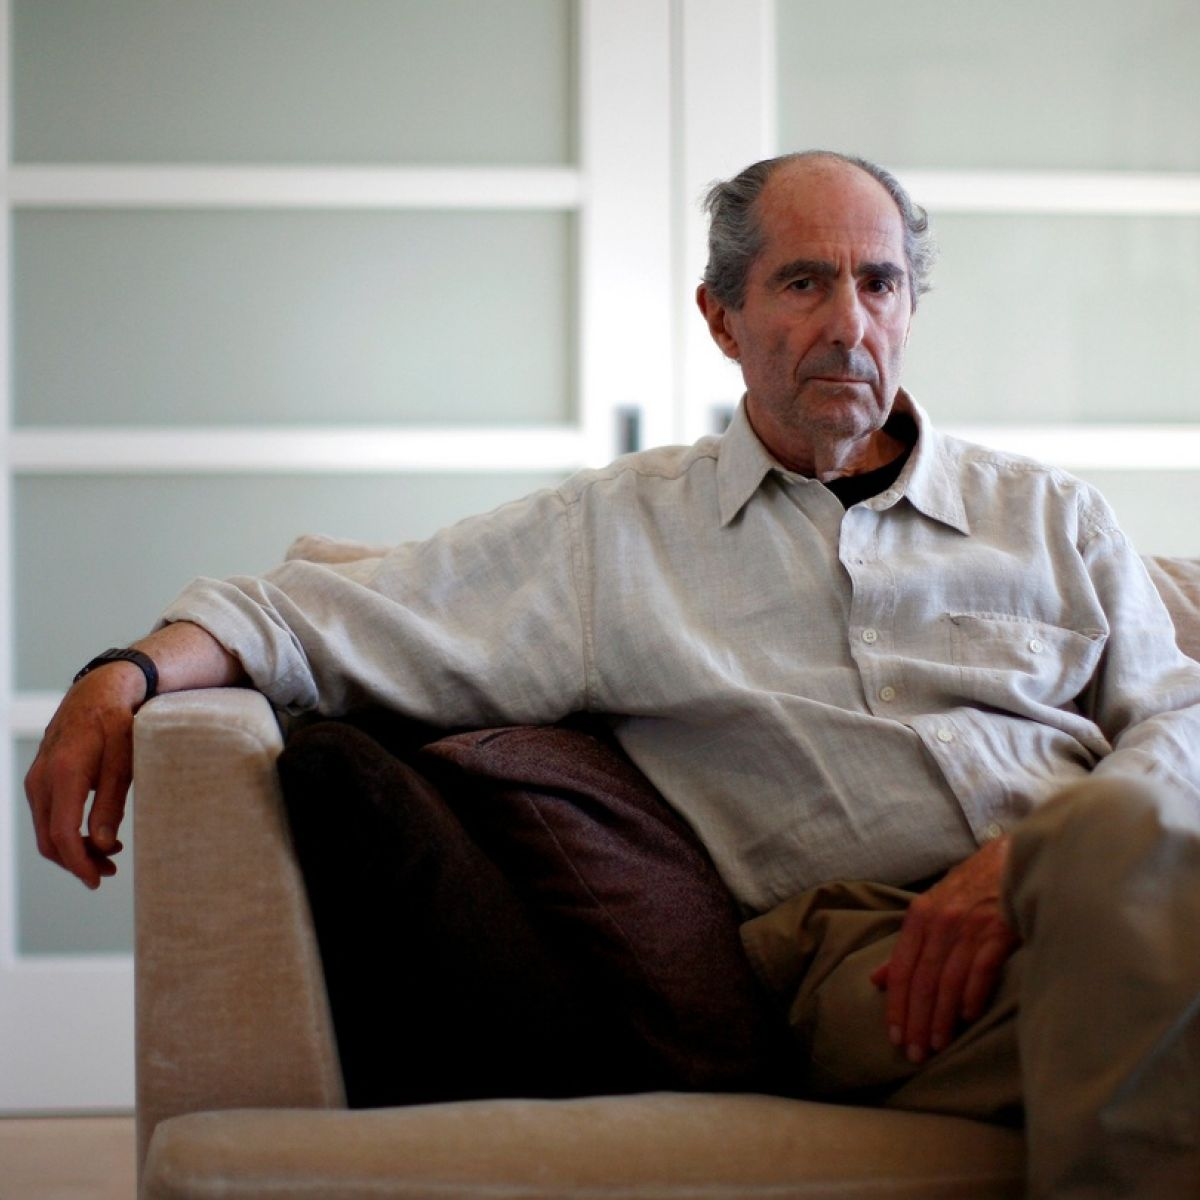 Philip Roth: Prolific writer who explored life with simmering intensity